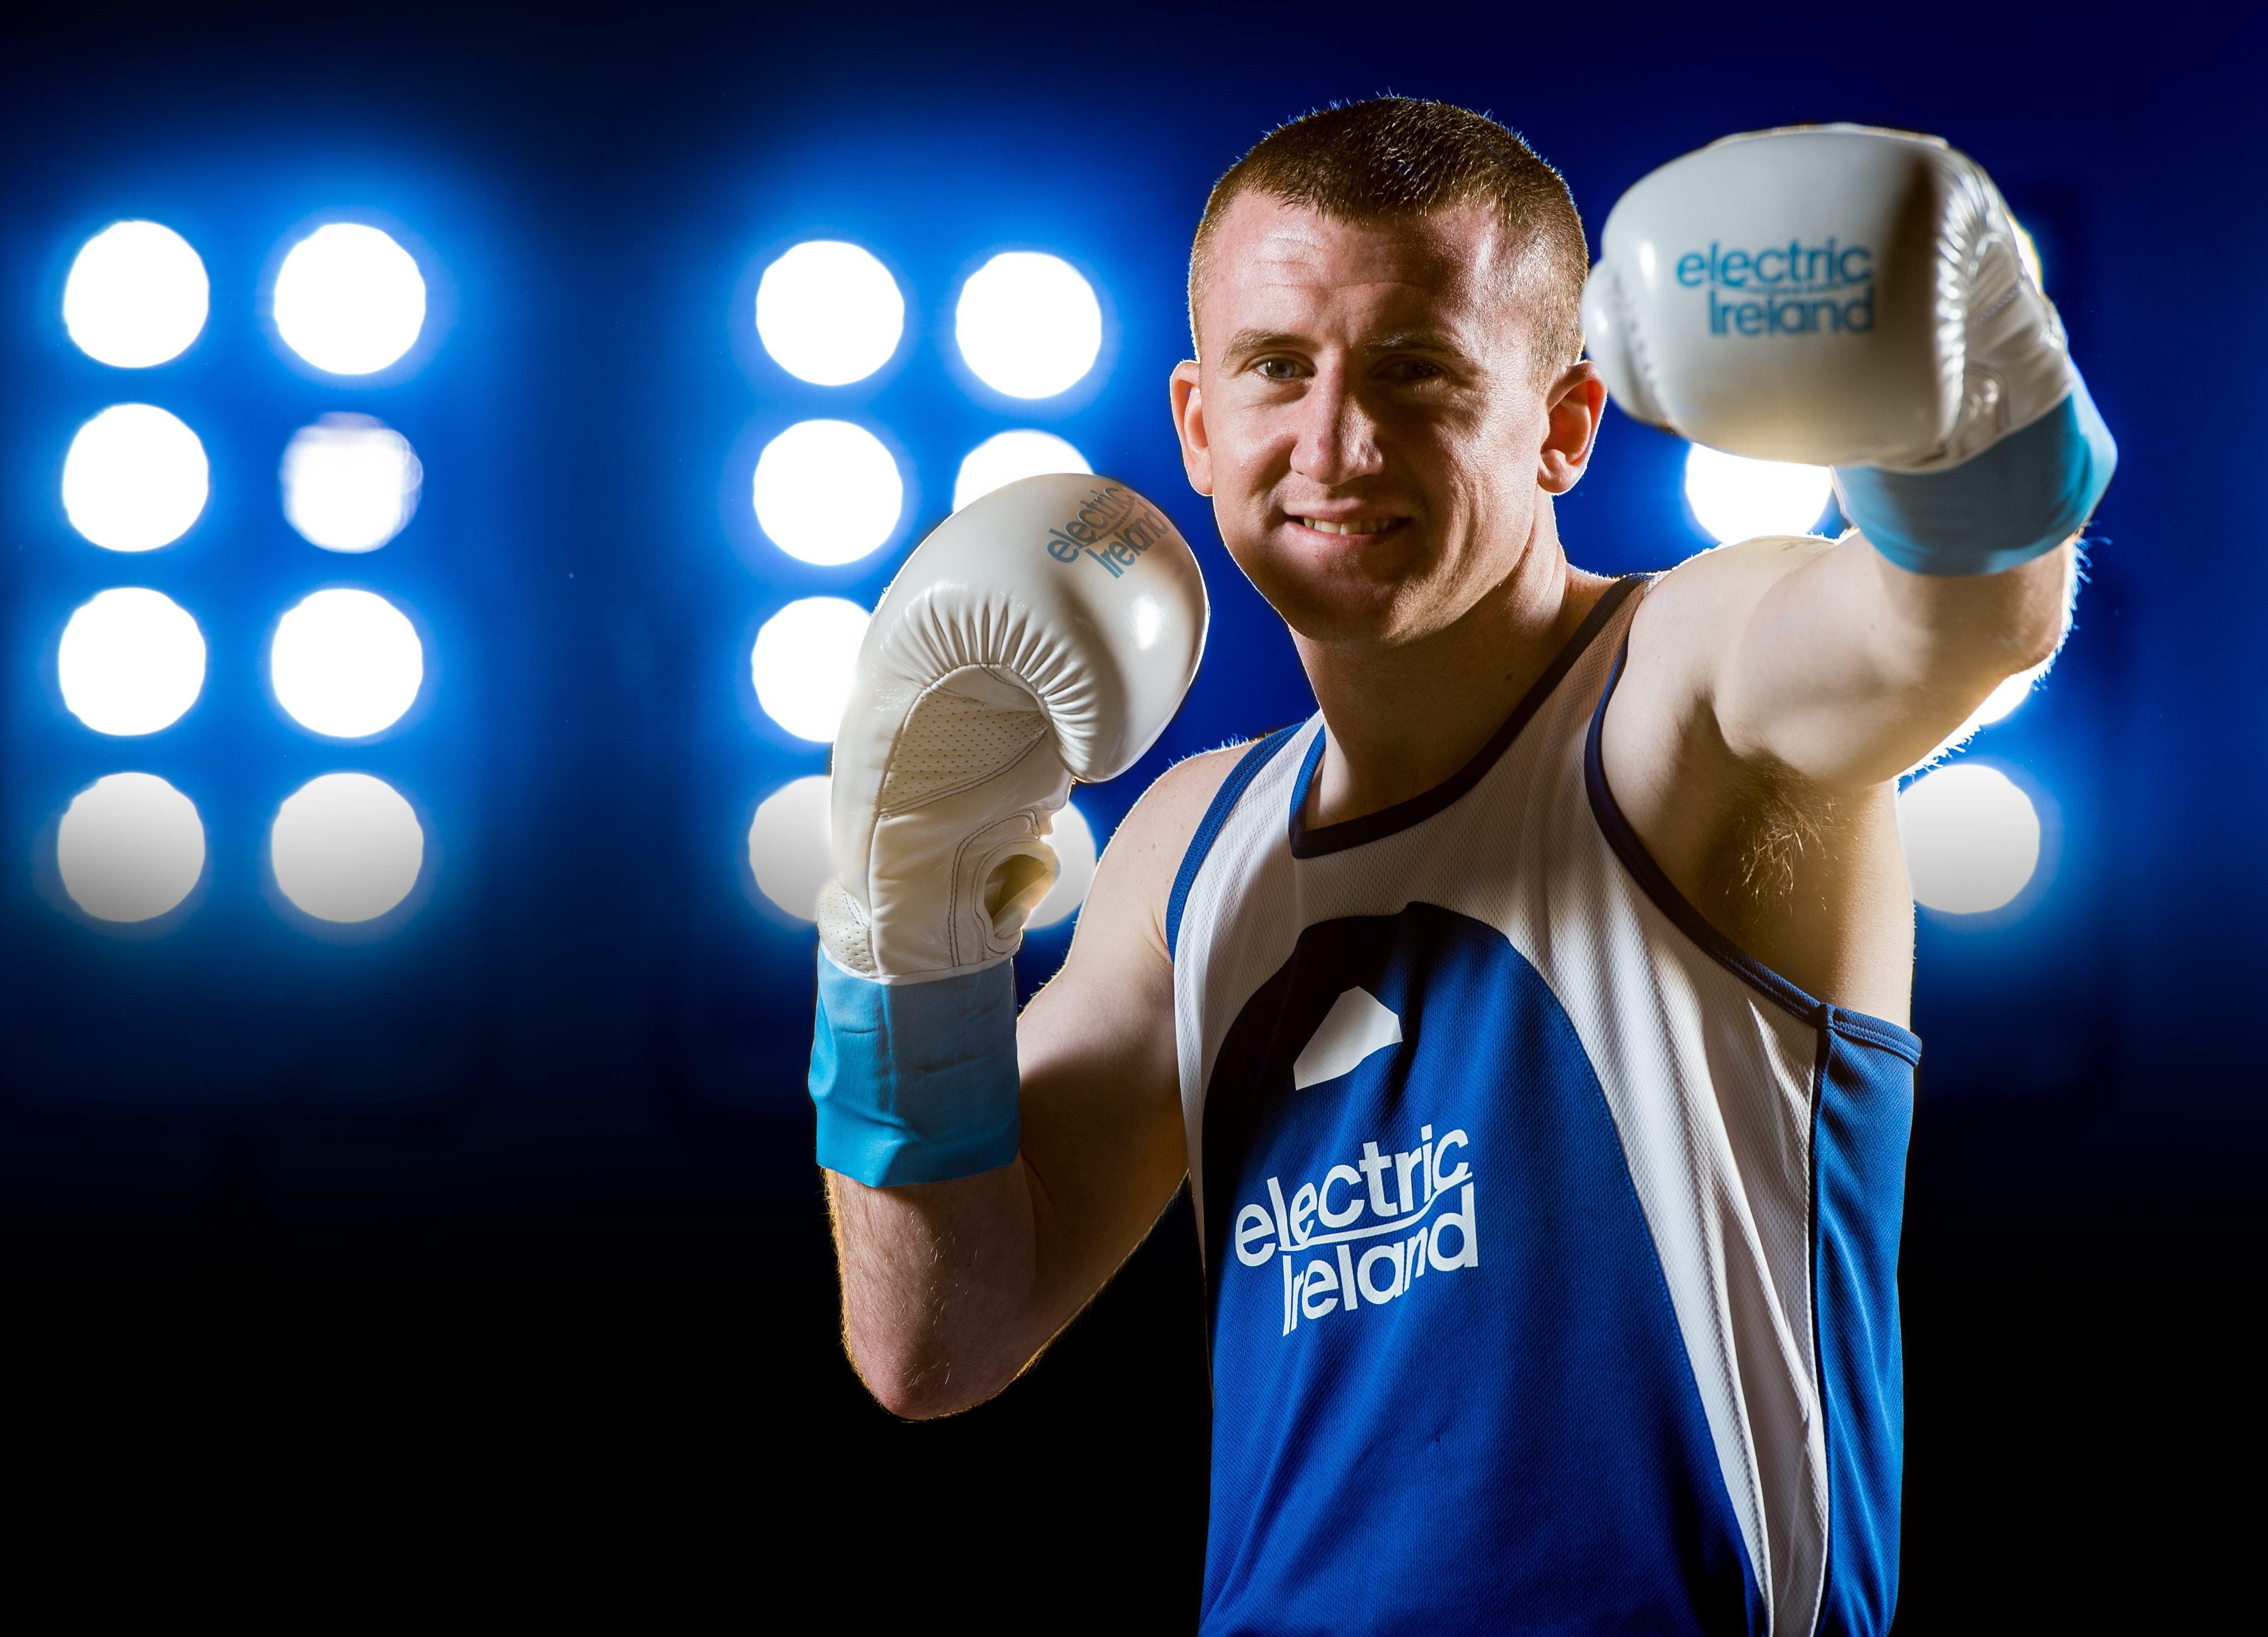 Double Olympic boxing medallist Paddy Barnes teamed up with Electric Ireland to announce its Smarter Living sponsorship of the Irish Olympic Team for Rio 2016.